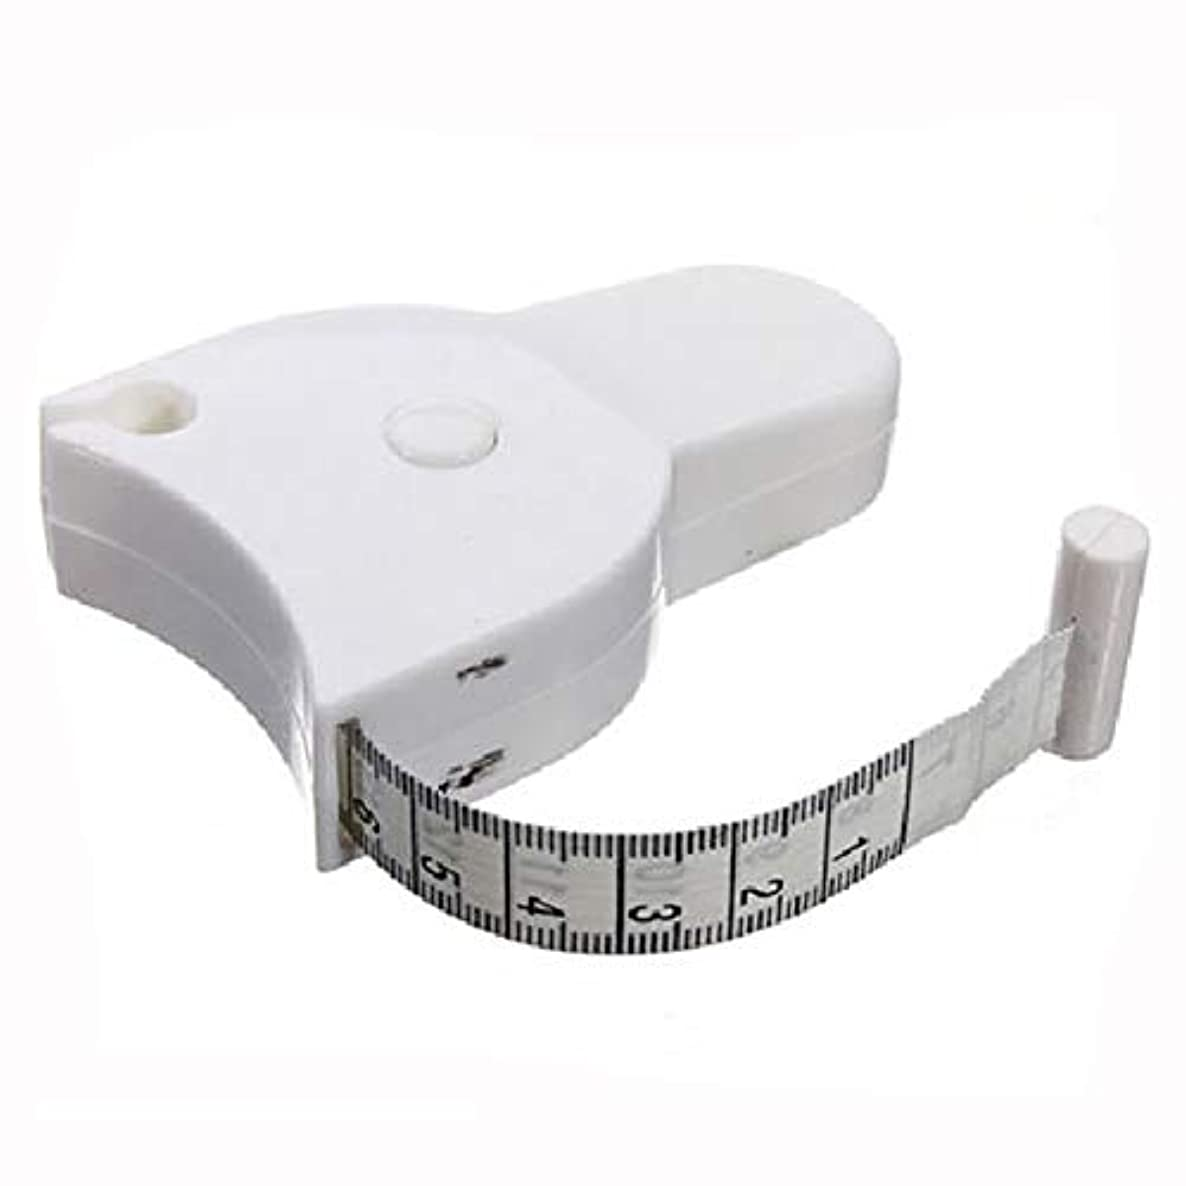 Tape Measure (MULTI-PURPOSE) Tool, Accurate White Flex Retractable Ruler, Dual-Sided, Locking Feature, Professional Long Body Tailor, Personal Trainer, Sewing, Smart Solution, Monitor - By Pro Measure